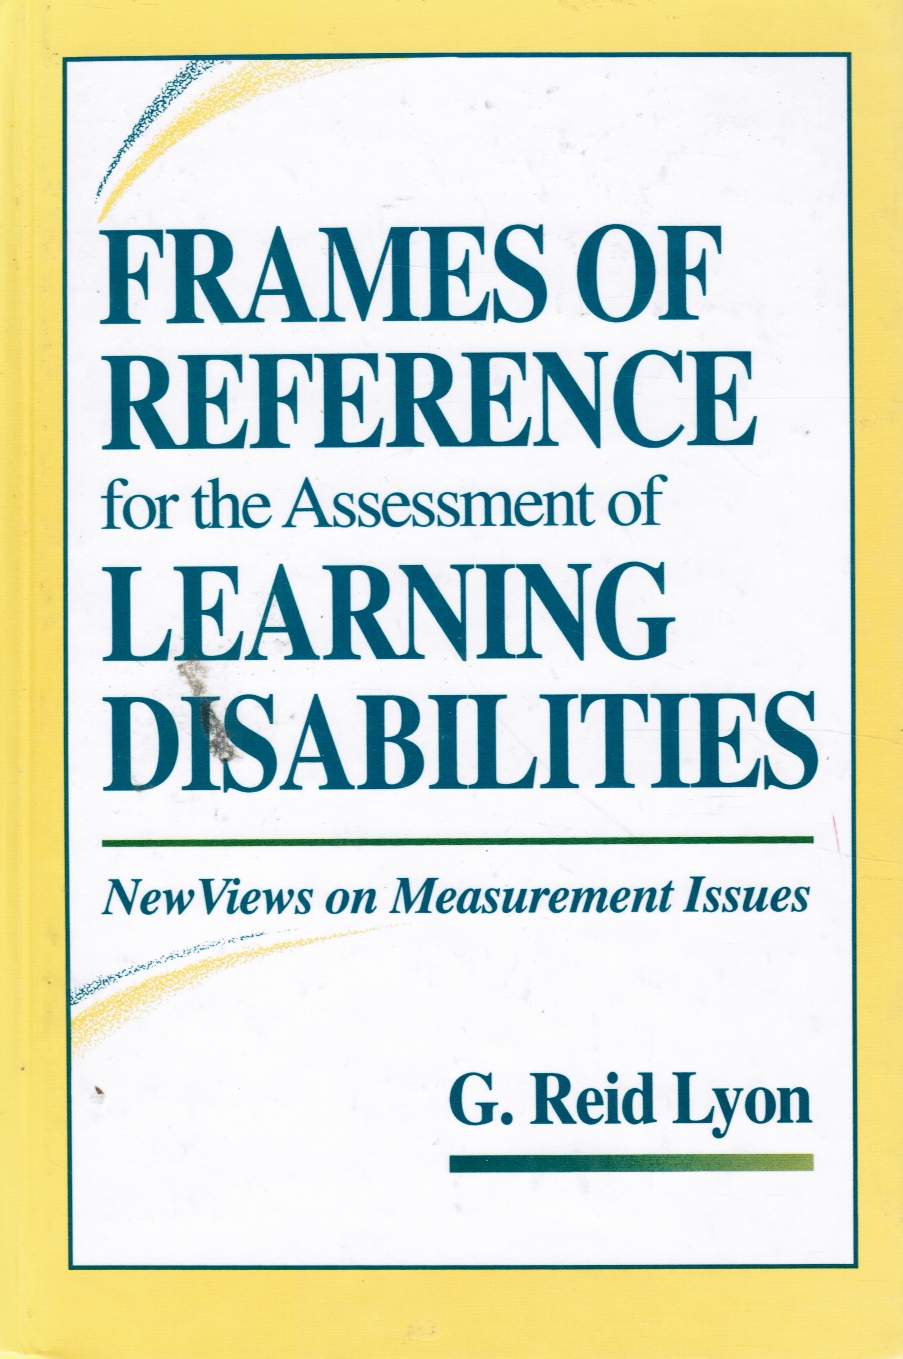 Image for Frames of Reference for the Assessment of Learning Disabilities: New Views on Measurement Issues